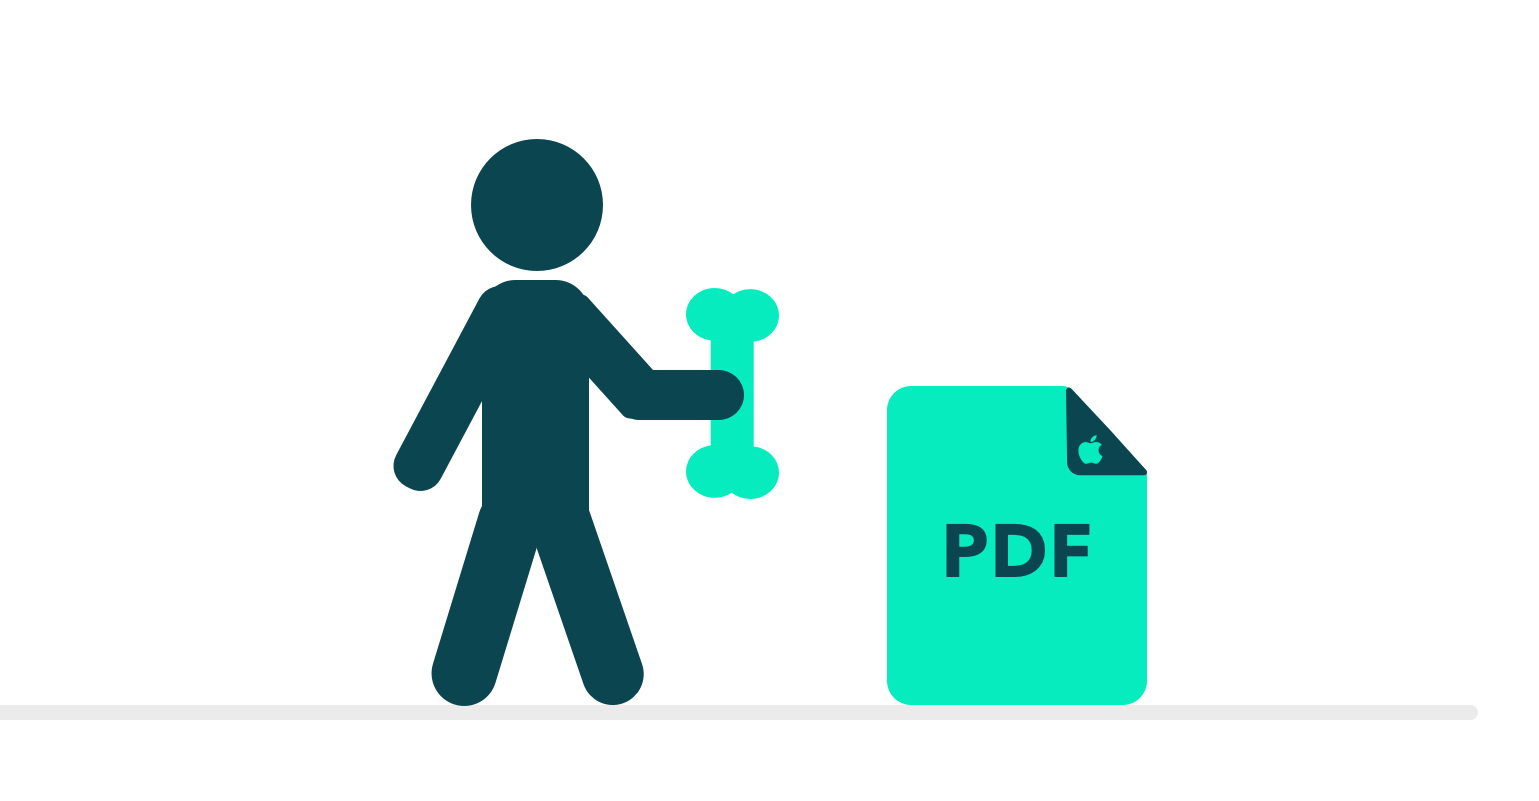 Introducing PDFKit for iOs, the best UIKit for iOs, a